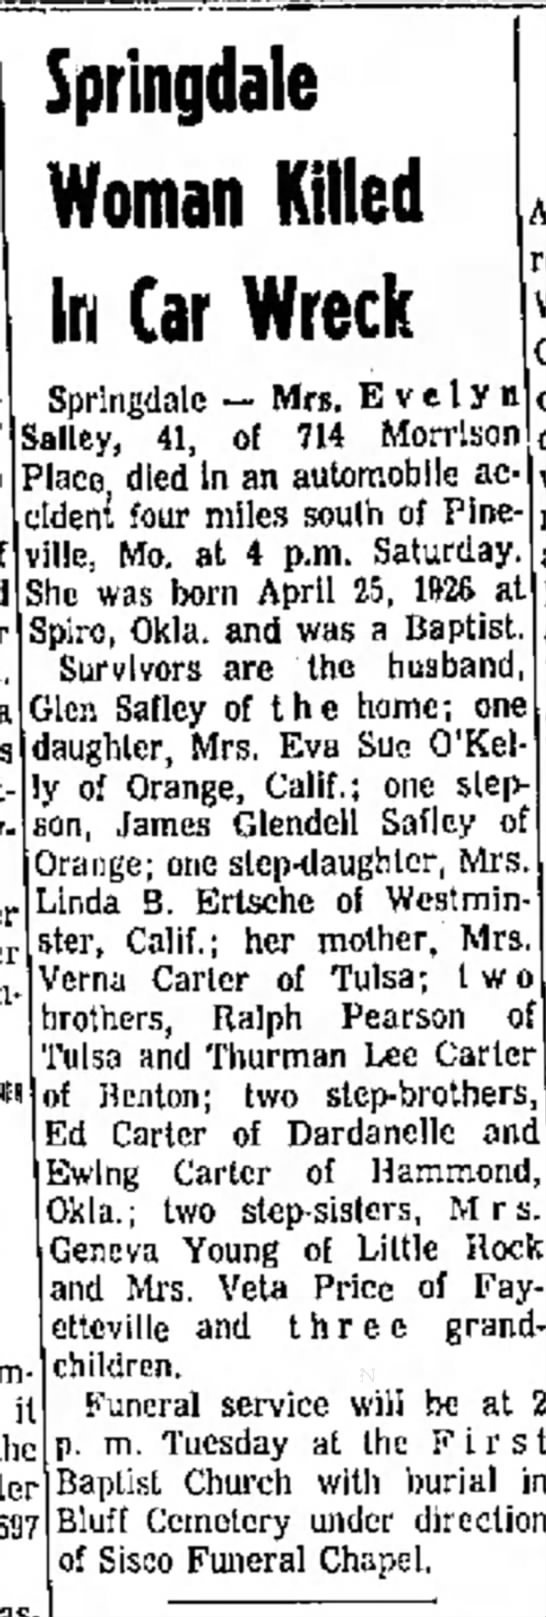 Safley, Evelyn Northwest AR Times, Fayettville 12-4-1967 - by a o nca boat boat- div- Springdale Woman...